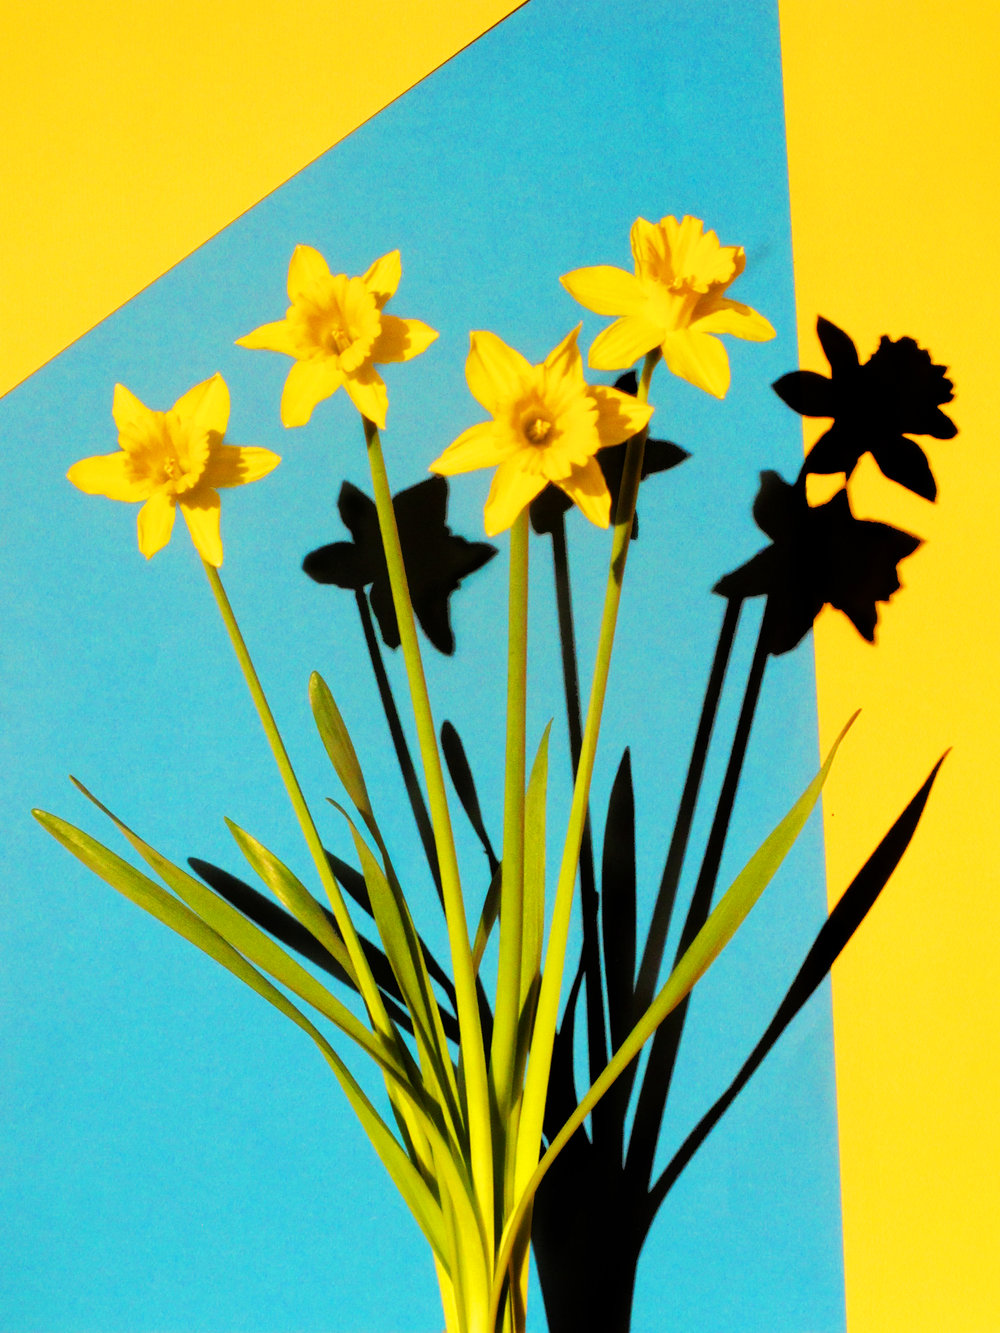 16x20_yellow_blue_daffodil.jpg